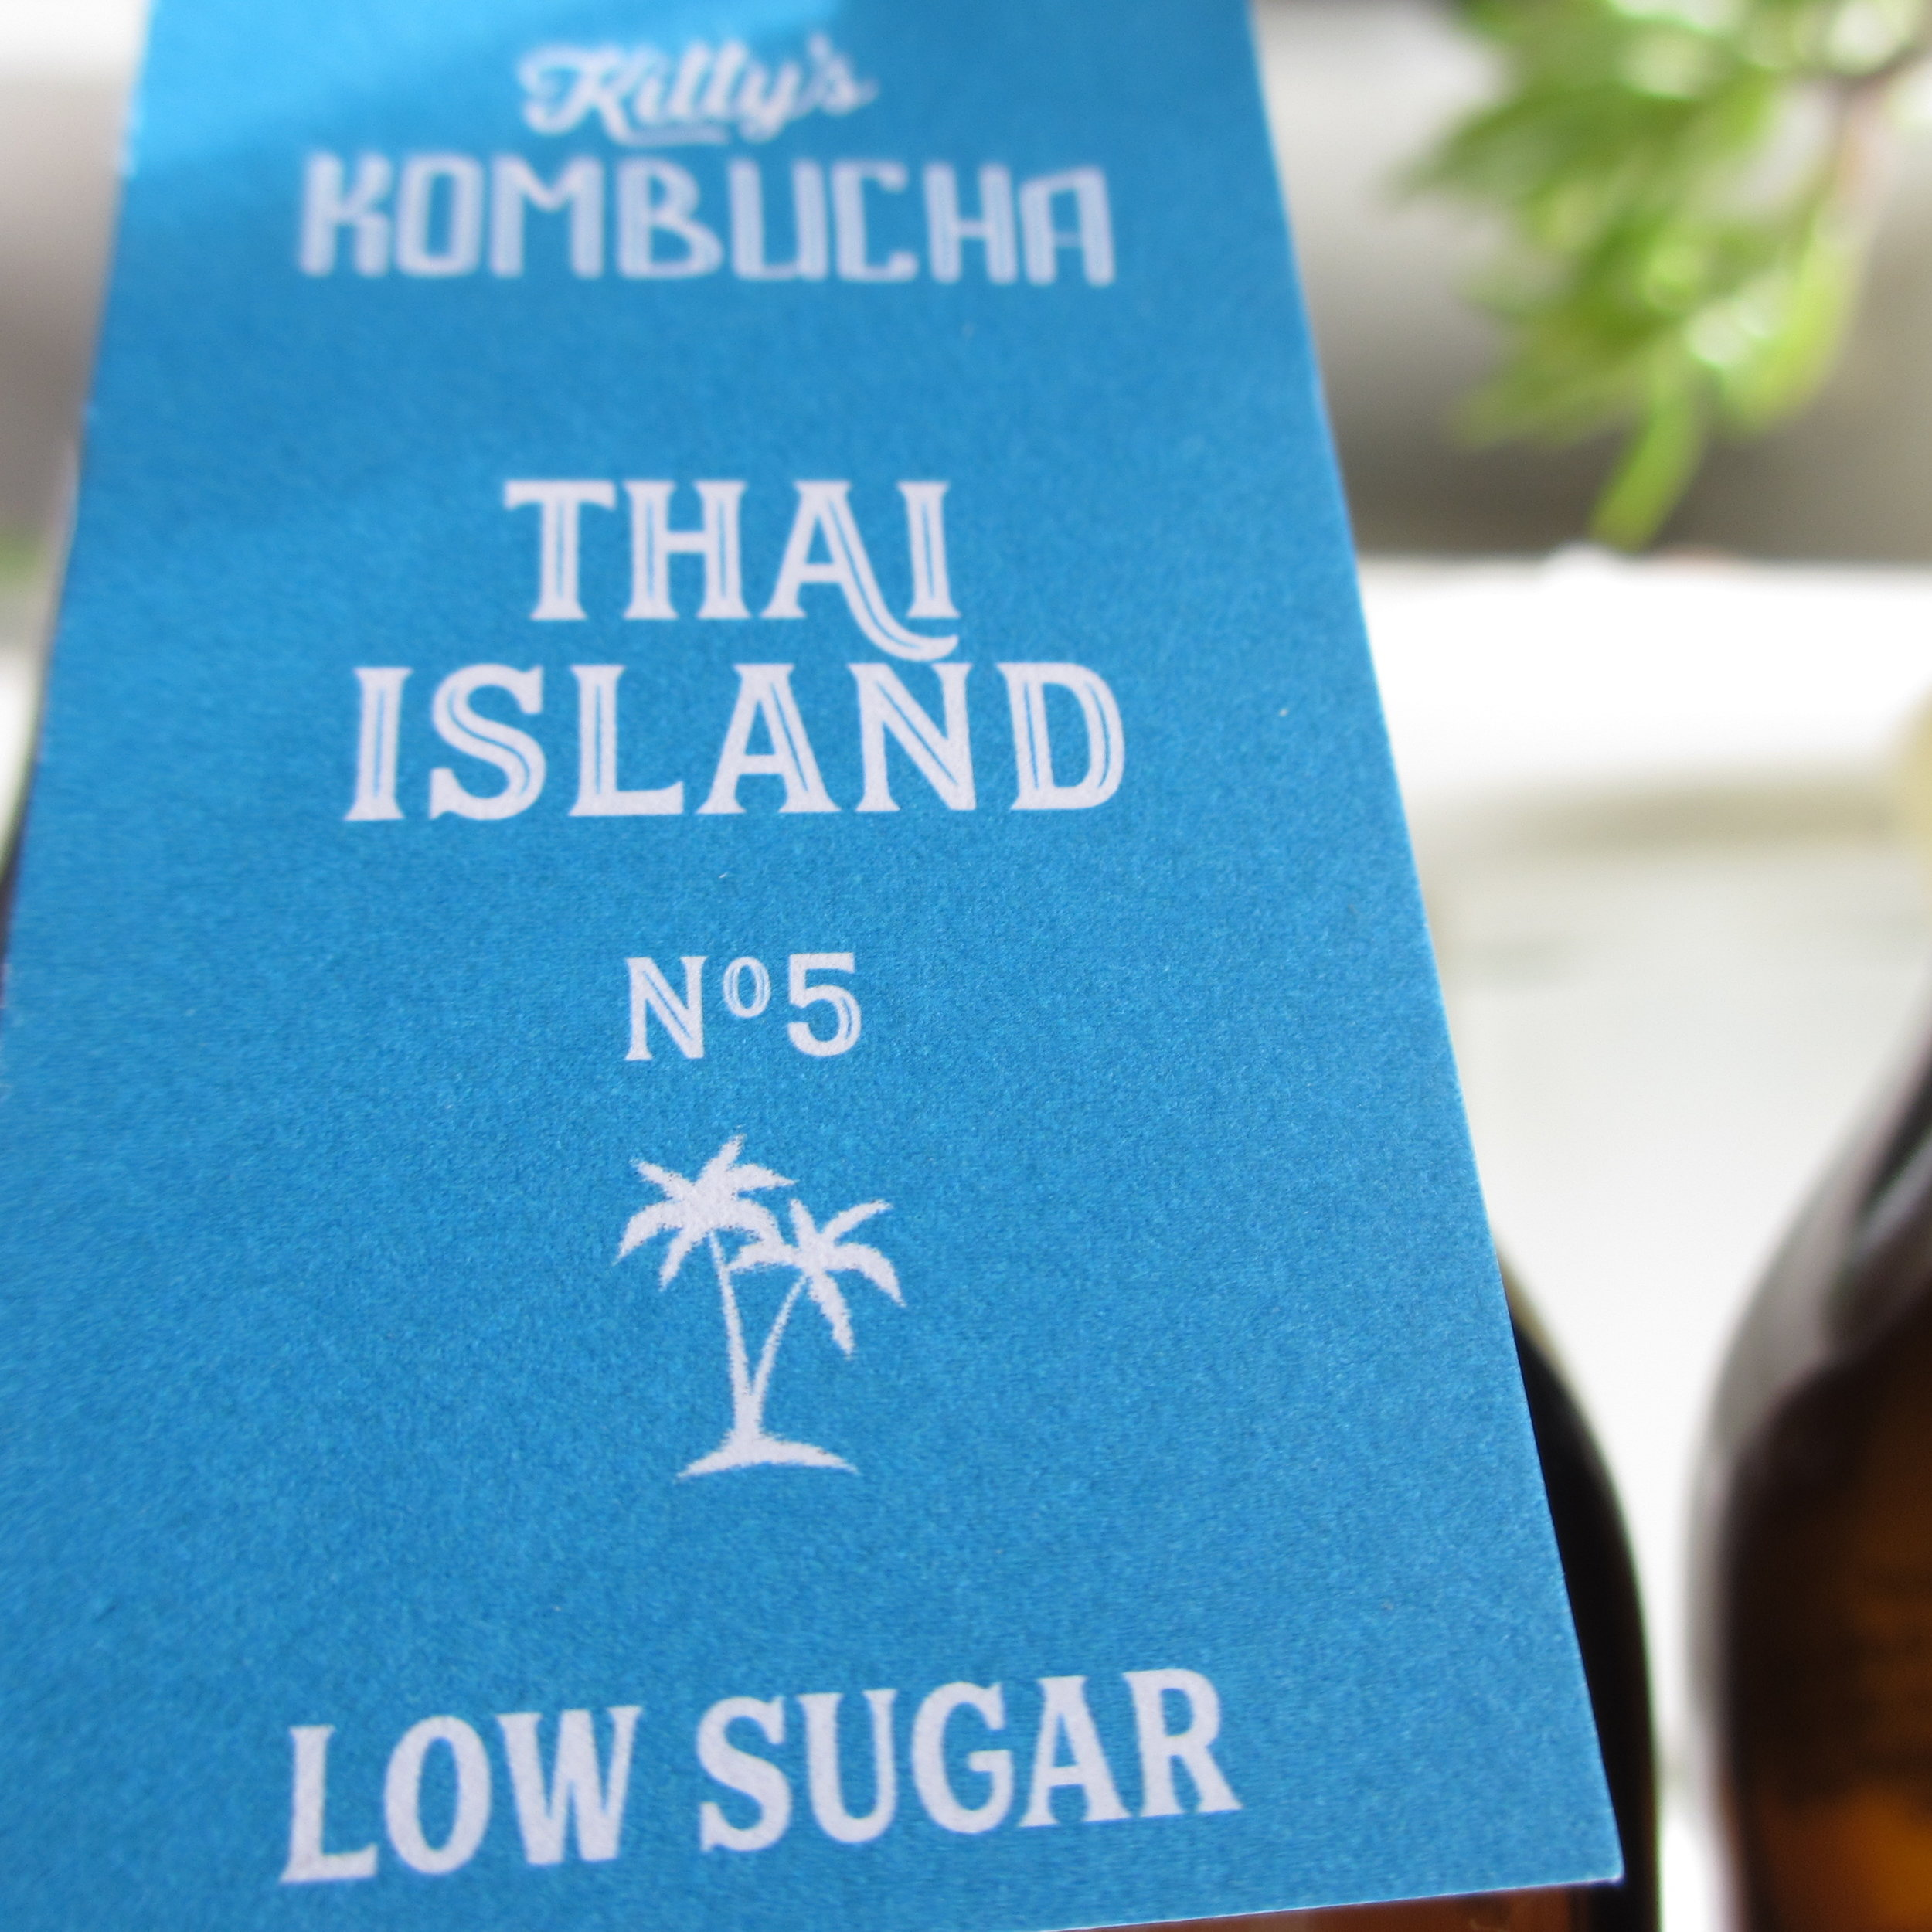 THAI ISLAND  NO.5  Low in sugar... and wonderfully aromatic.  Incredible floral Thai herbal notes, strongly evocative of effervescent happy island-living. An original Kitty's Kombucha recipe from Thailand.  Hand crafted with Thai herbs, organic green sencha tea and cane sugar,  Thai Island  is a traditionally brewed kombucha in oak barrels, infused for 2nd fermentation with a tisane (herbal tea) of lemongrass, ginger, kafir lime leaf, galangal and turmeric root.  And with less than 2.5g of sugar per 100ml, it's  low sugar  & just hits the spot!  Enjoy cold, perfectly as it is...  Alternatively, create a sprightly mixer on vodka or gin & ice, or whichever way you wish.